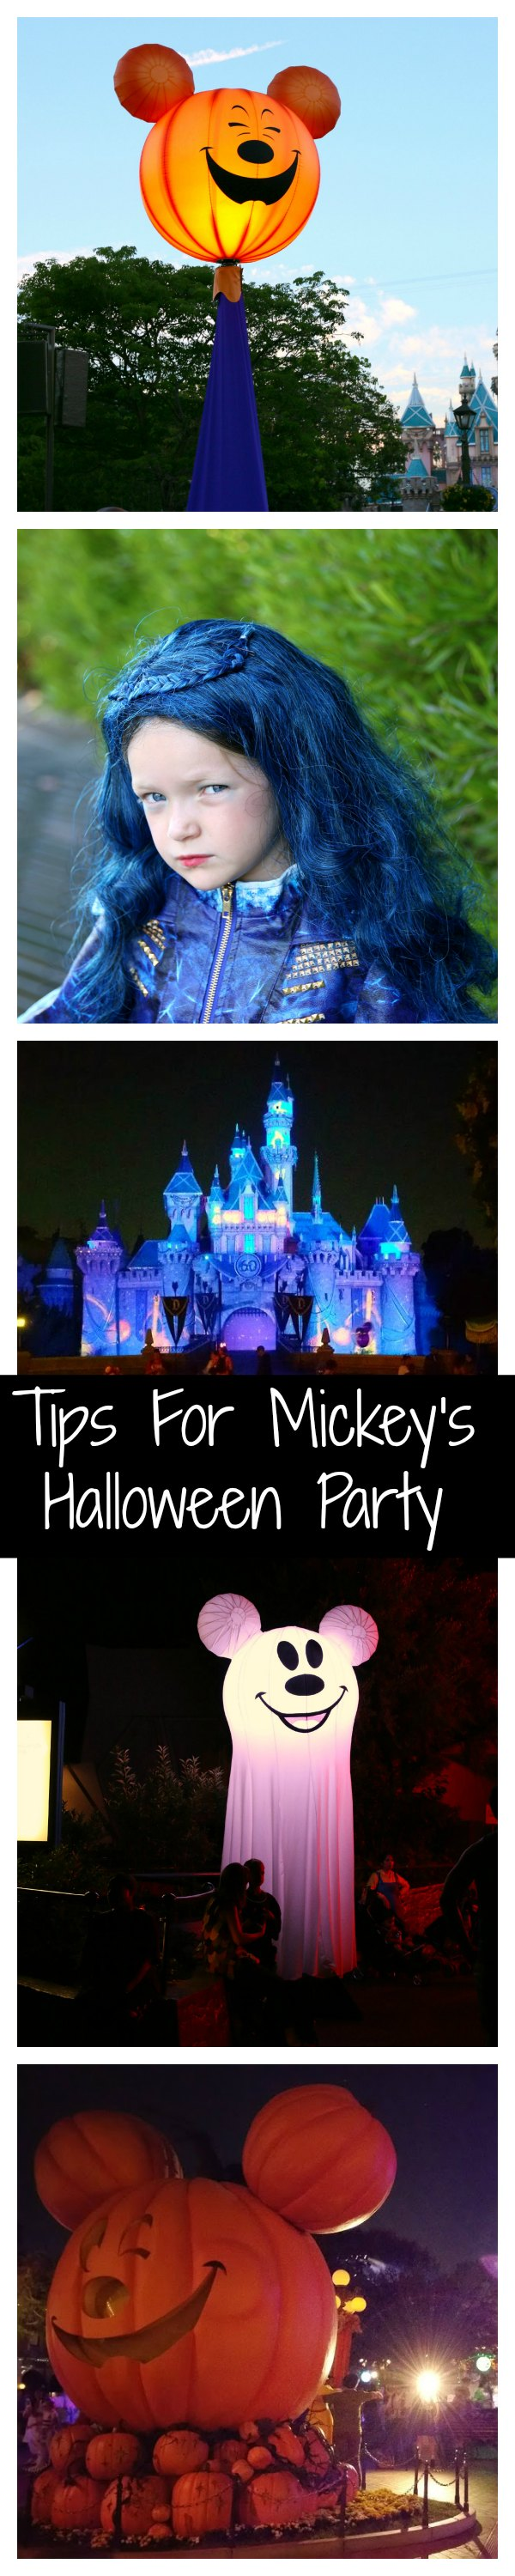 tips for mickeys halloween party